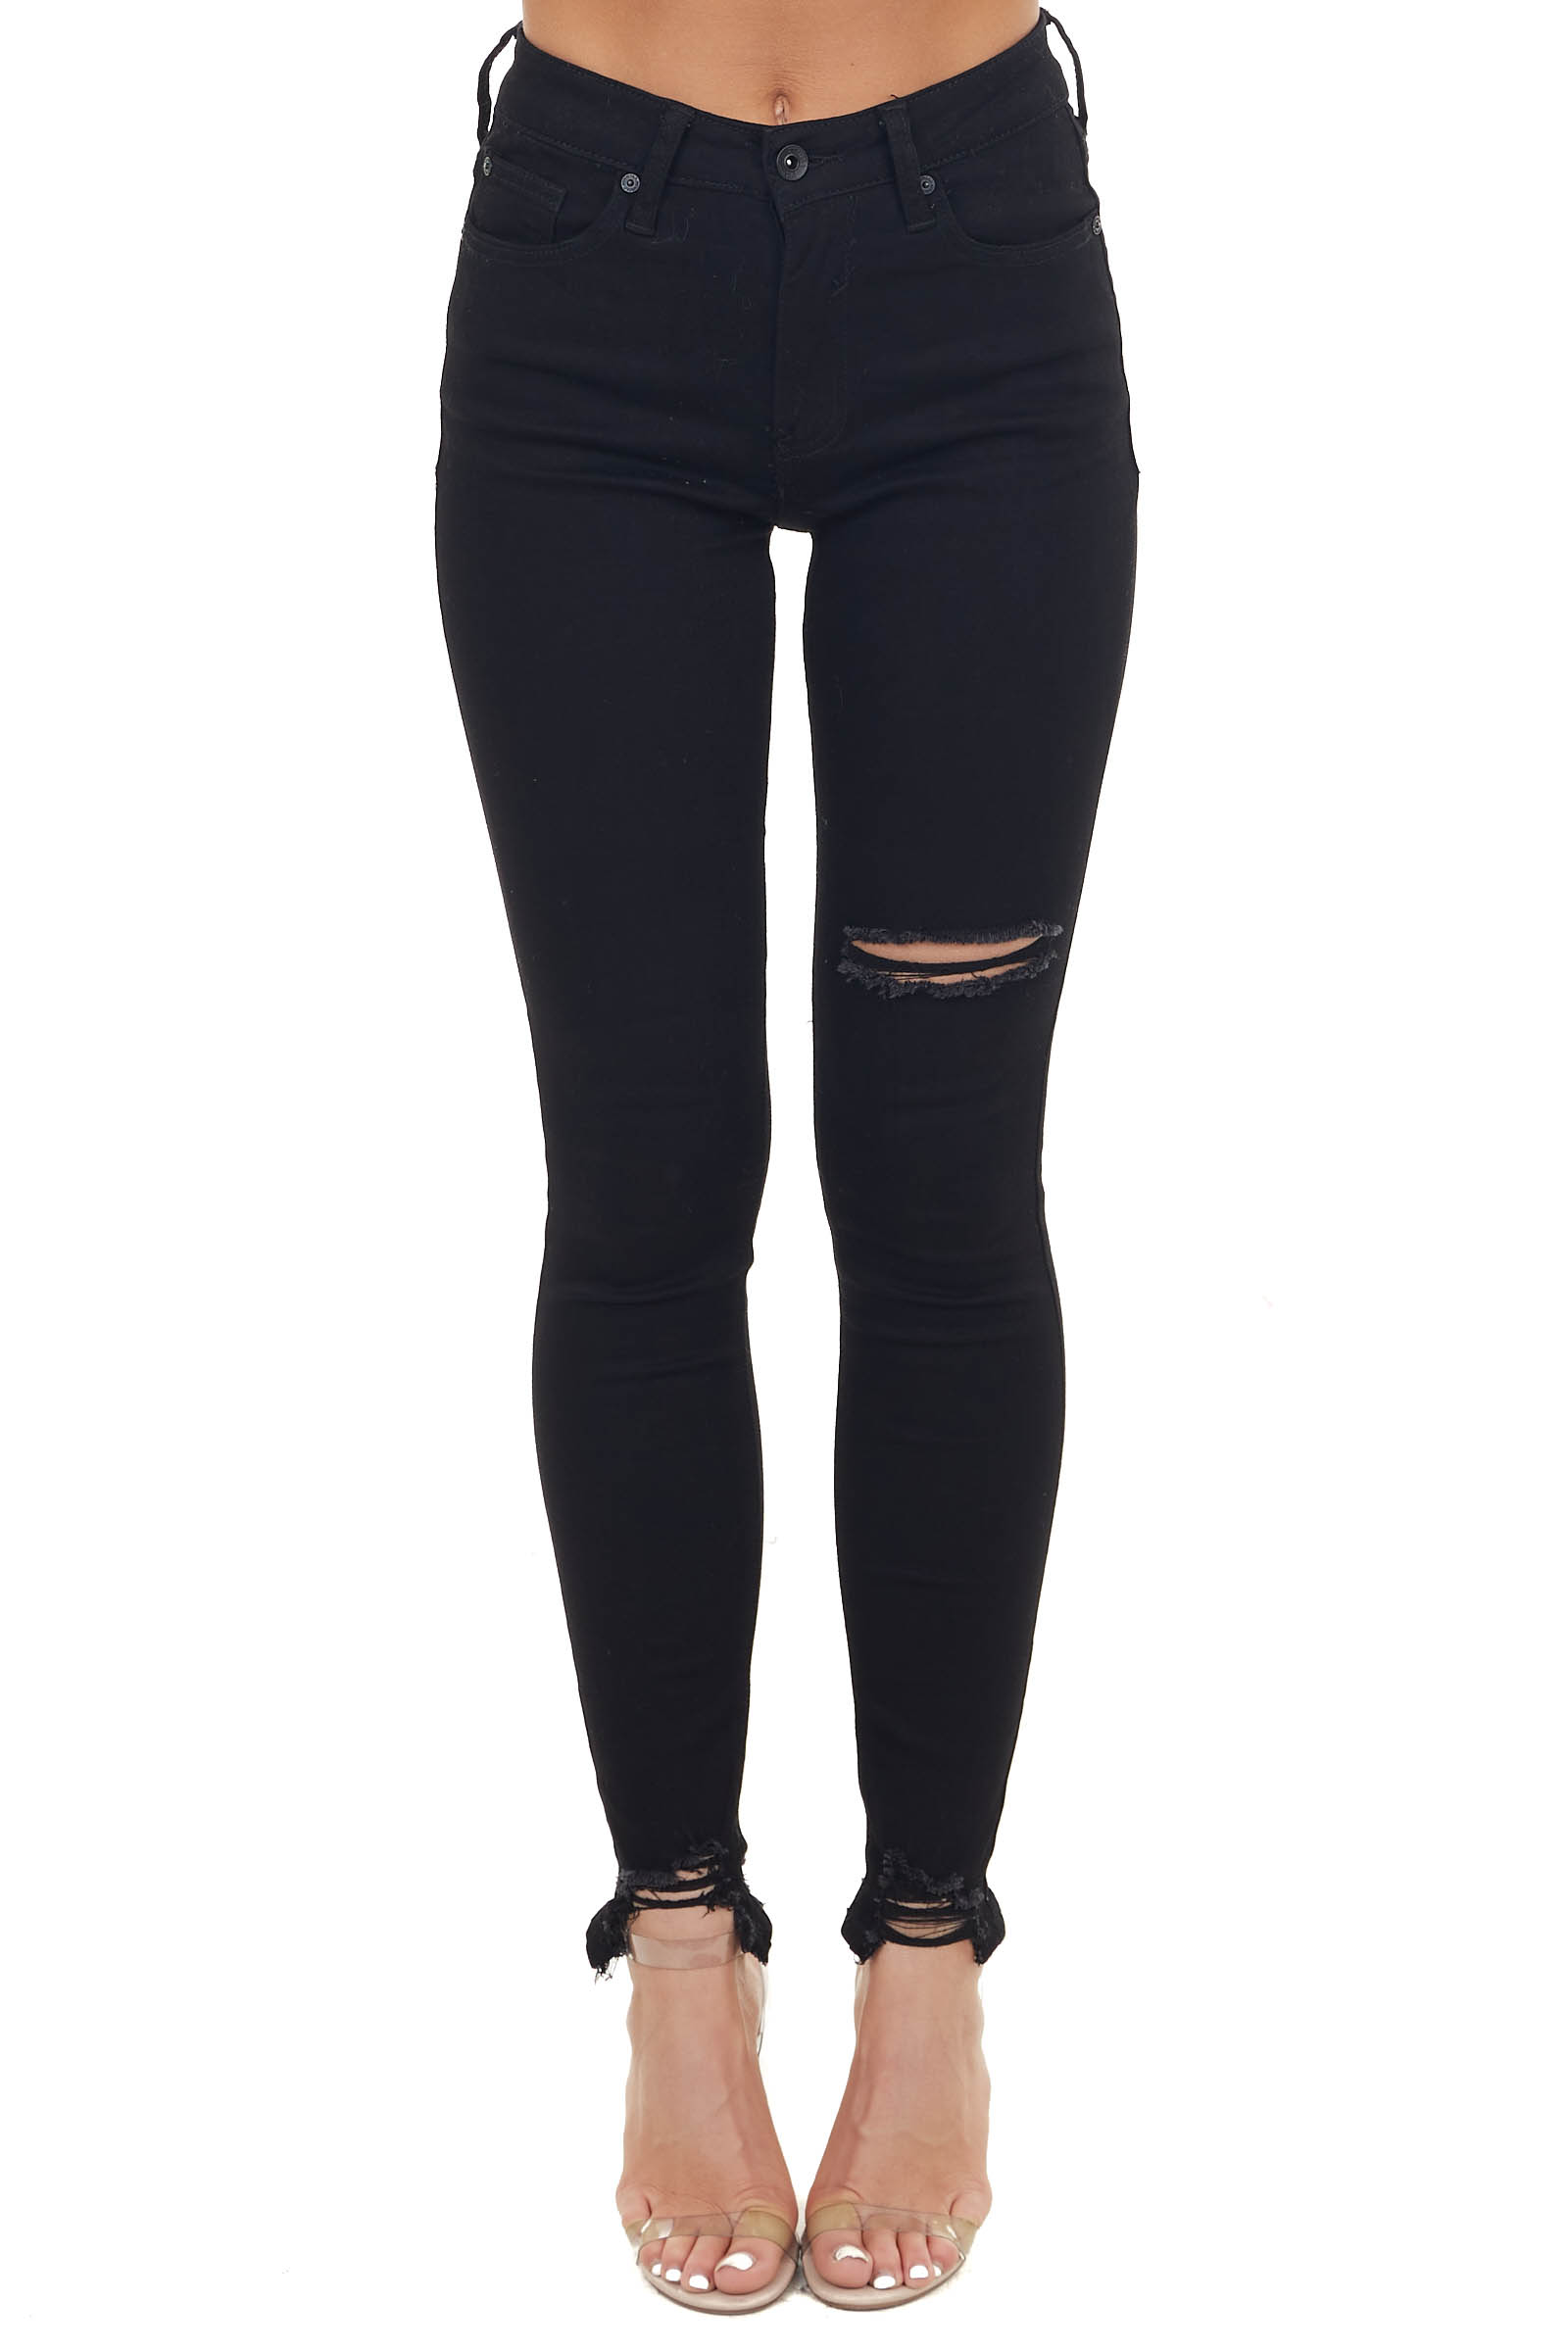 Black High Waisted Skinny Jeans with Distressed Detail